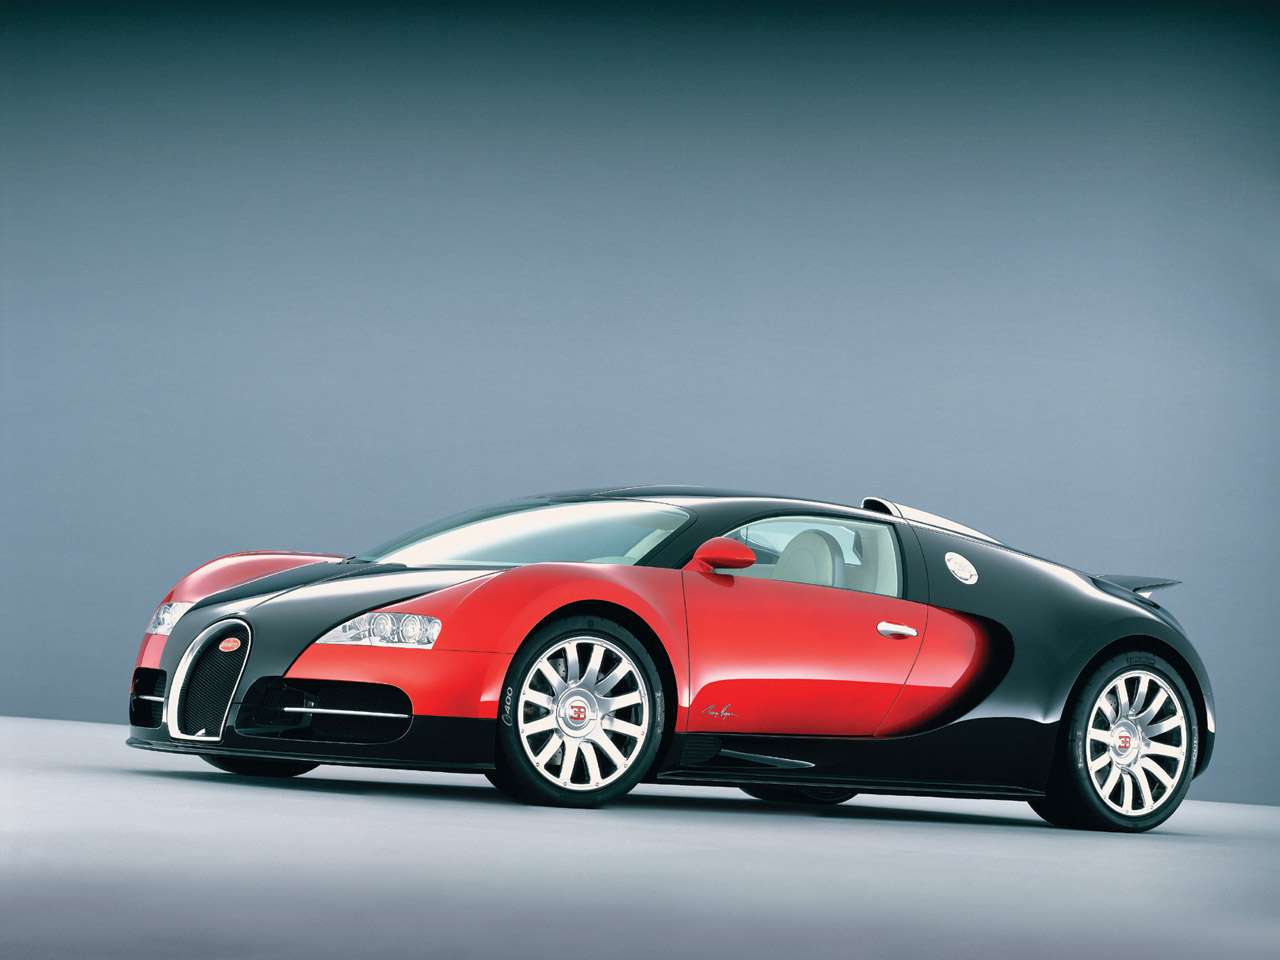 Red And Black Bugatti Veyron Wallpaper   image 429 1280x960